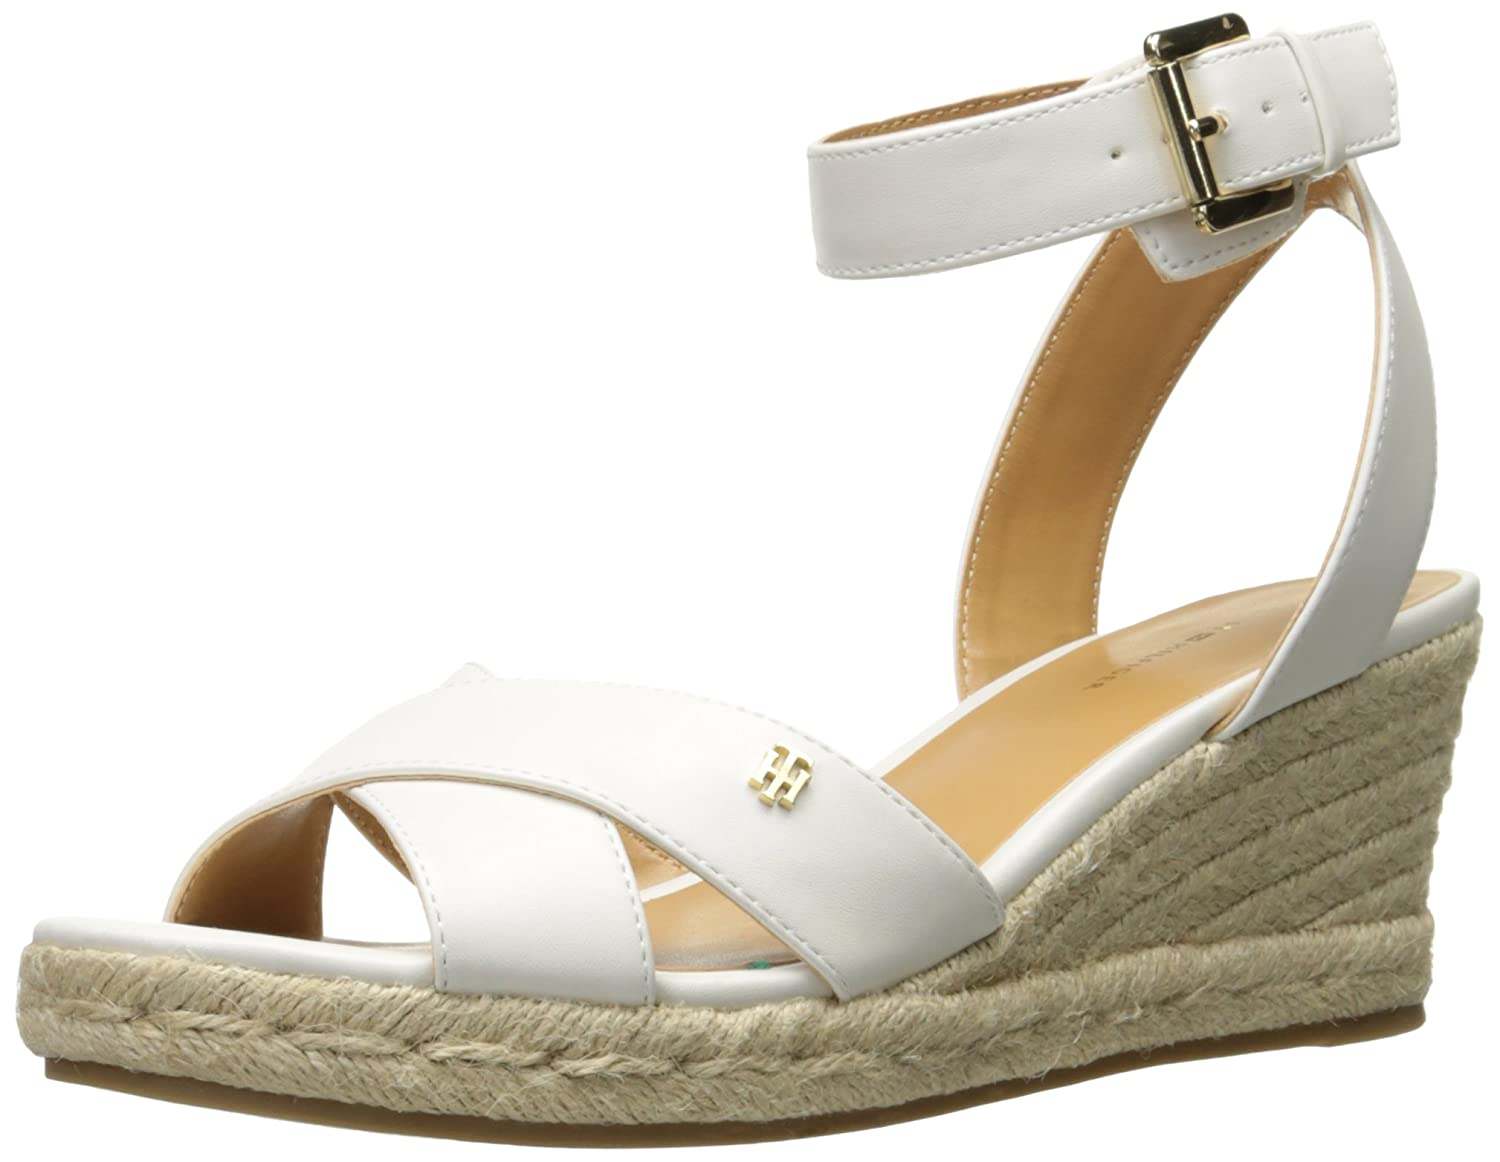 Tommy Hilfiger Women's Gorgis Wedge Sandal B01M9DODEA 5.5 B(M) US|White